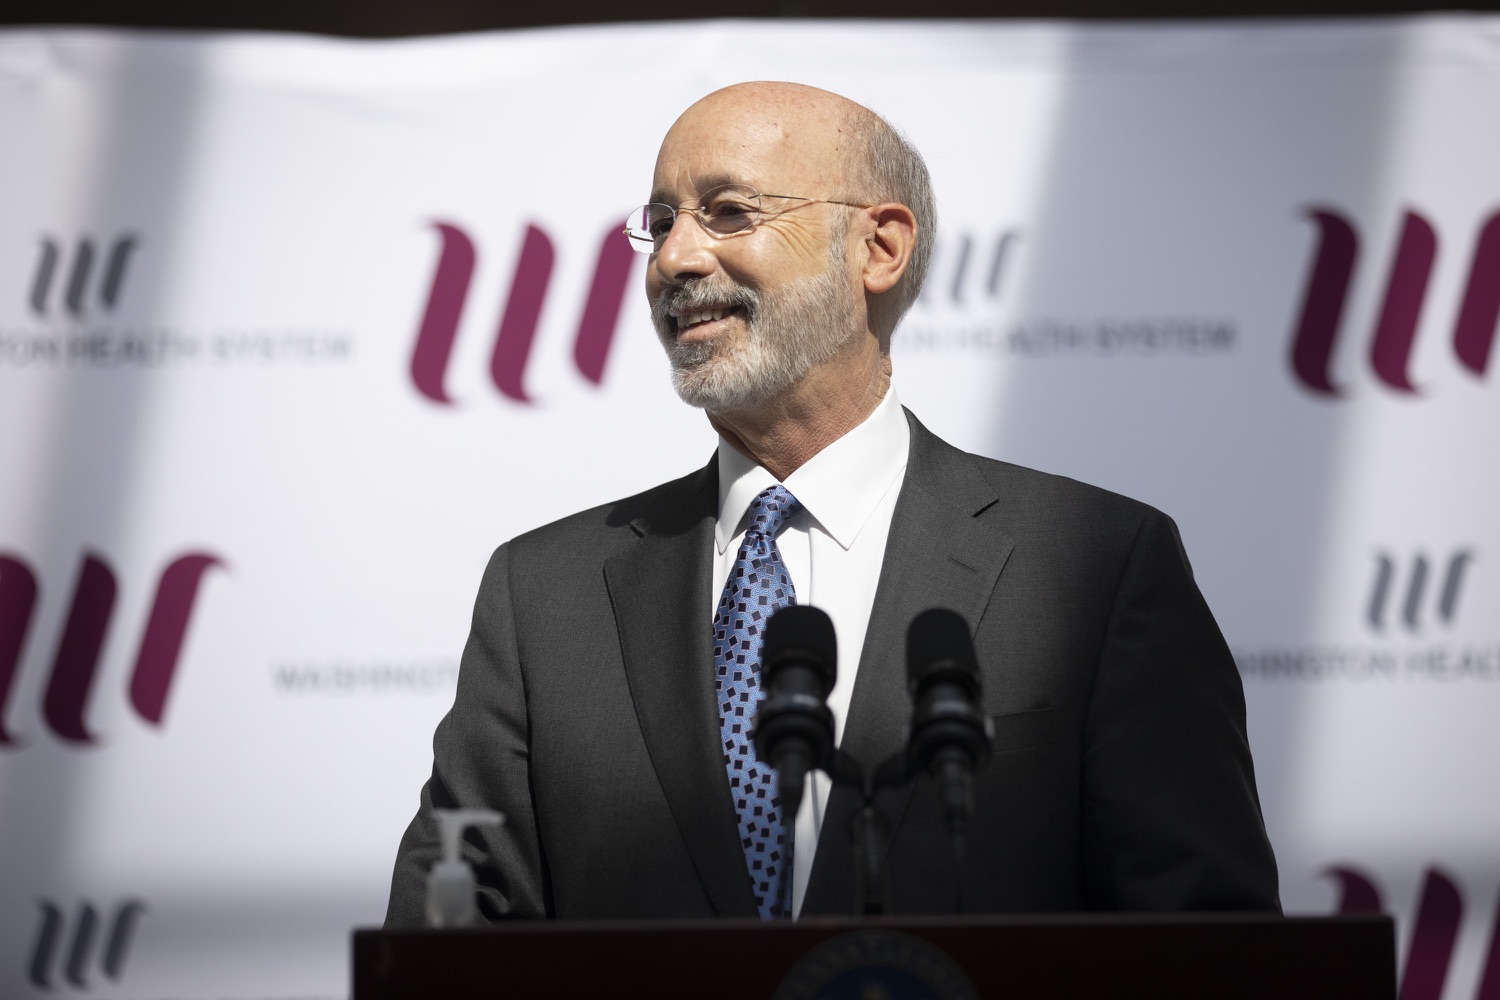 "<a href=""https://filesource.wostreaming.net/commonwealthofpa/photo/18712_gov_vaccines_dz_002.jpg"" target=""_blank"">⇣ Download Photo<br></a>Pennsylvania Governor Tom Wolf speaking with the press.  Continuing to visit COVID-19 vaccine clinics around the state, Governor Tom Wolf toured a clinic at the Washington Crown Center in Washington County today. The clinic is one of three operated by the Washington Health System (WHS) serving rural communities in southwestern Pennsylvania.  North Franklin Township, PA  April 28, 2021"